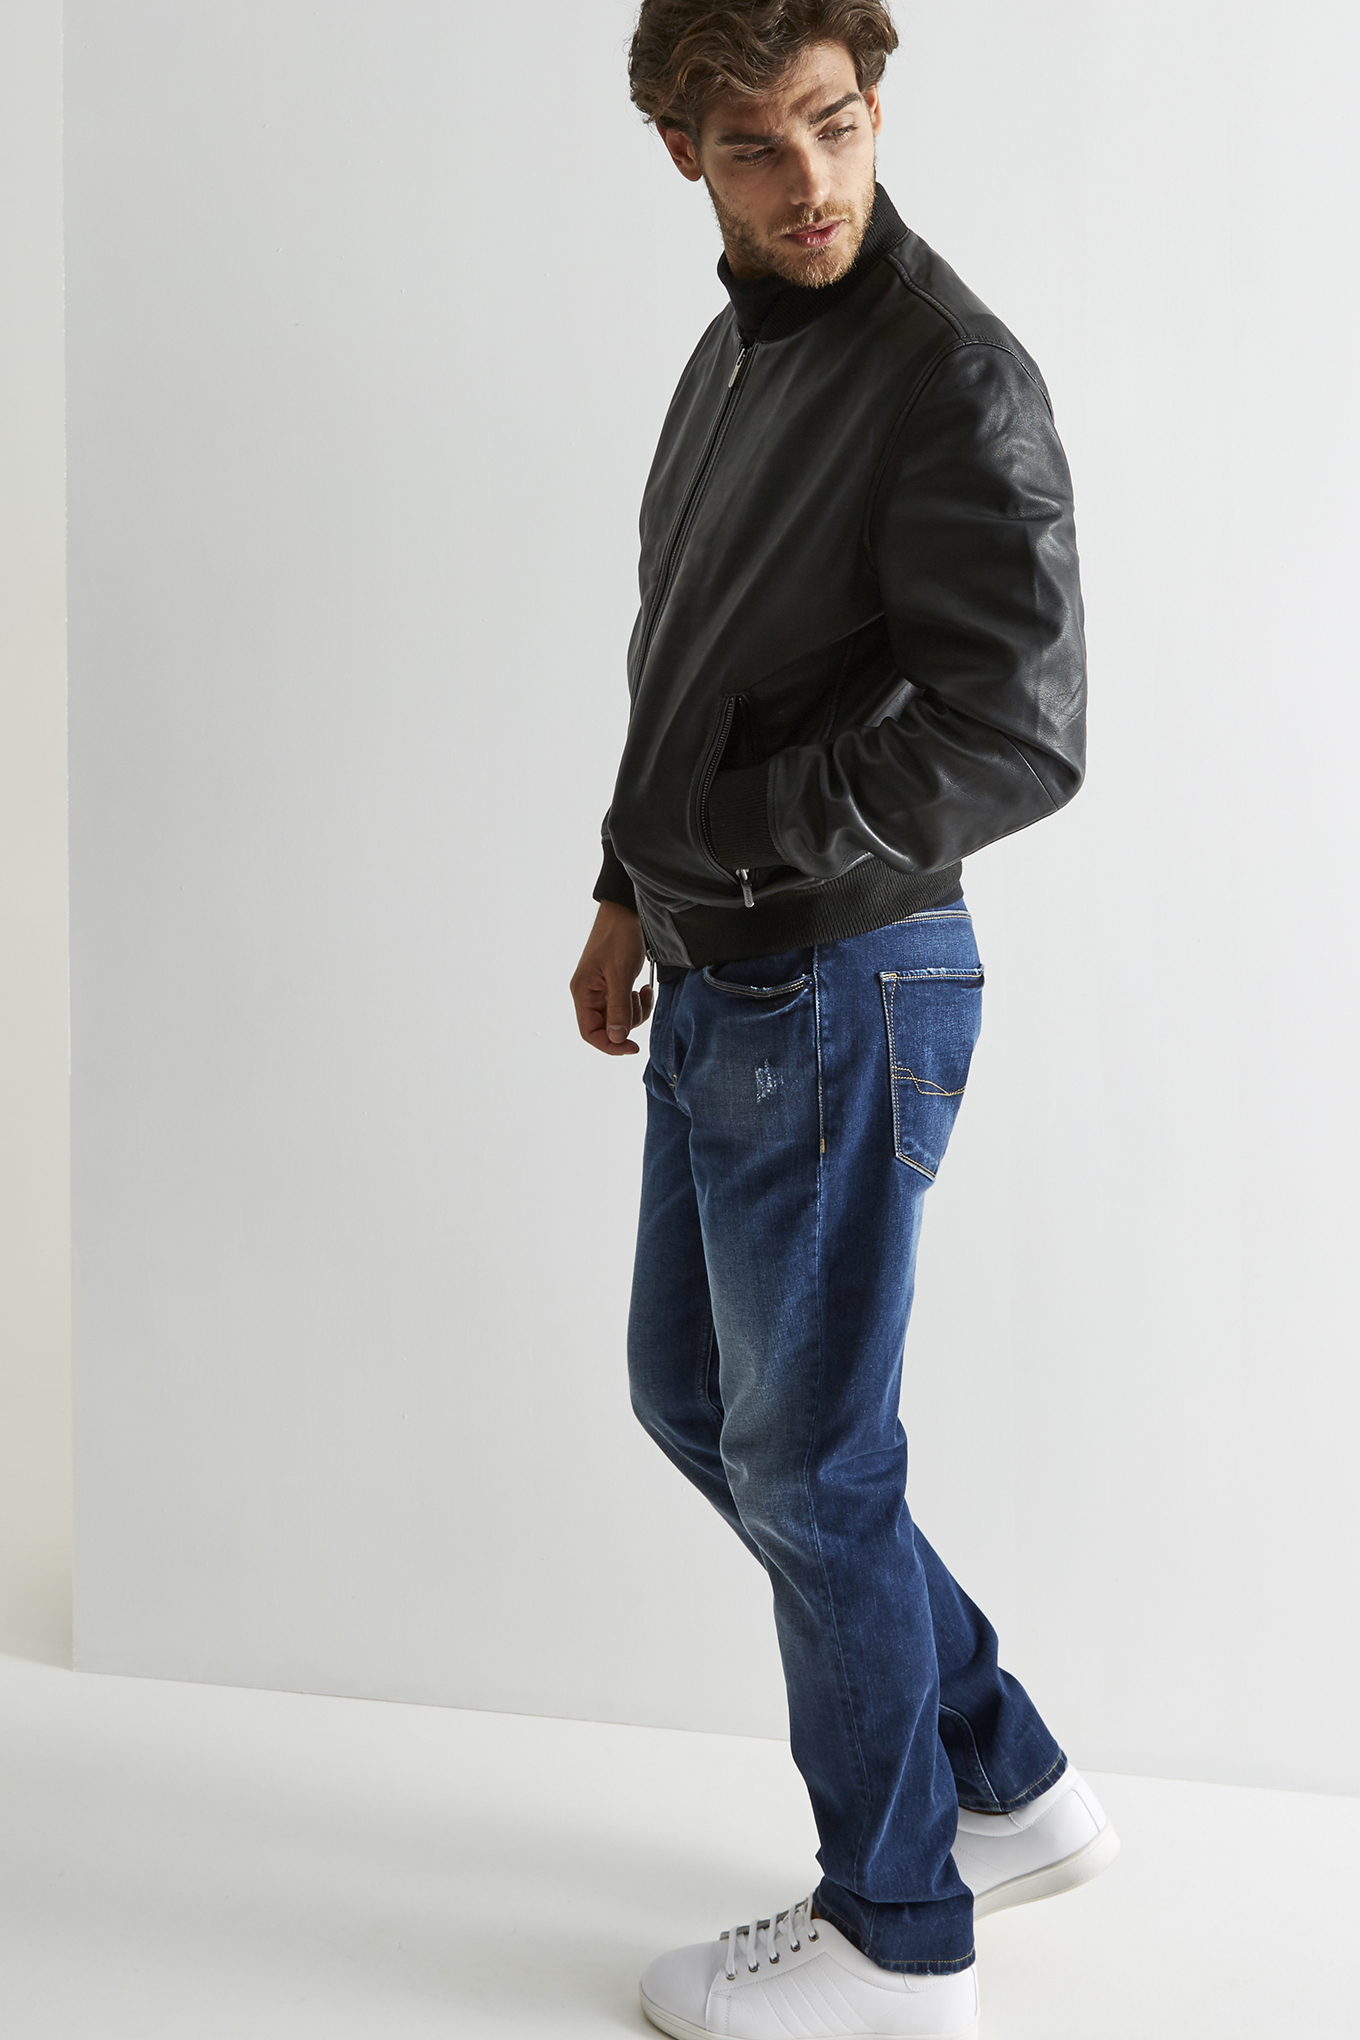 Leather Jacket Black Casual Man